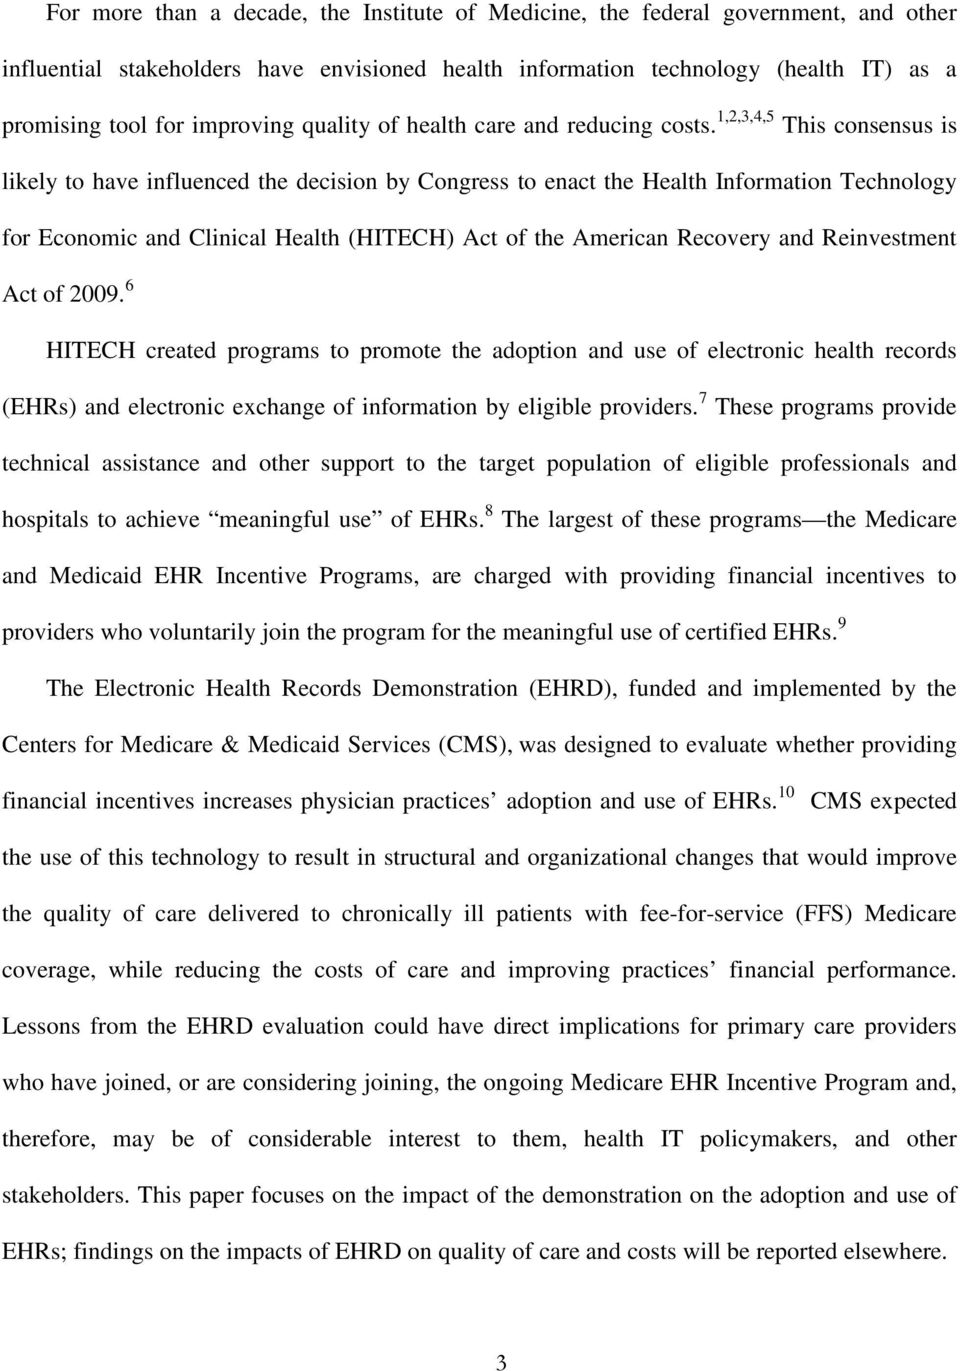 1,2,3,4,5 This consensus is likely to have influenced the decision by Congress to enact the Health Information Technology for Economic and Clinical Health (HITECH) Act of the American Recovery and